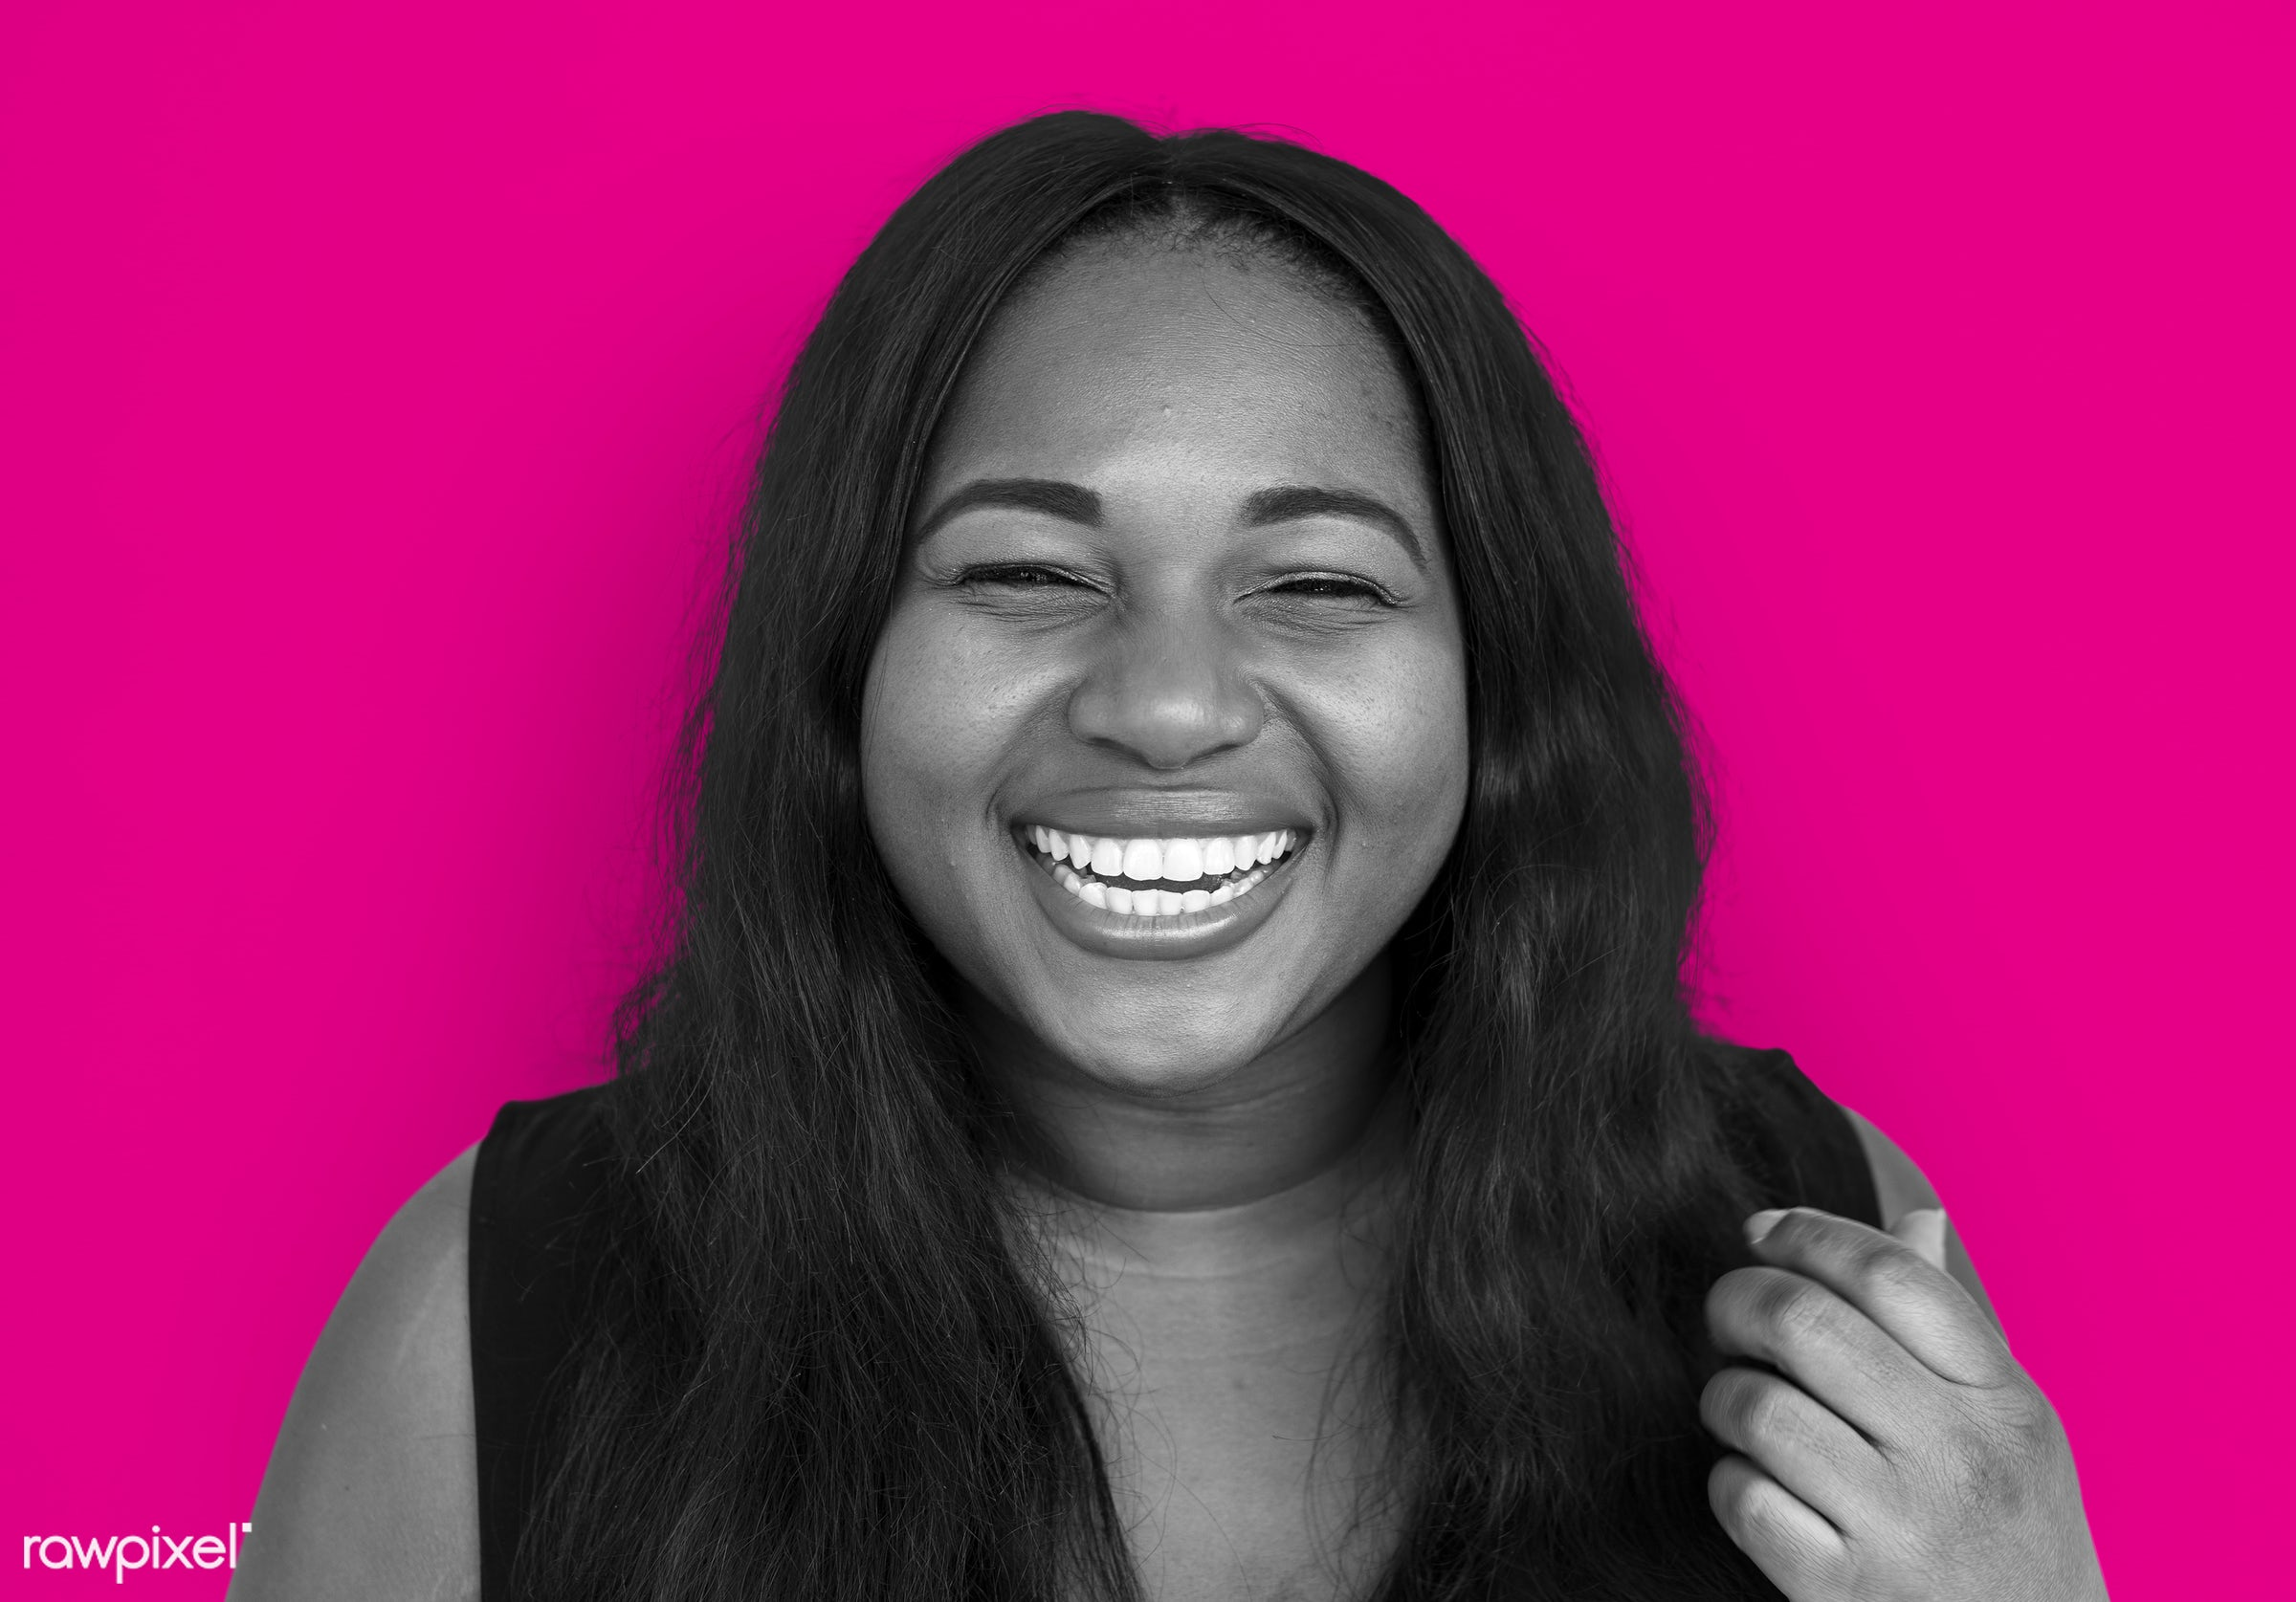 studio, expression, person, people, woman, pink, smile, cheerful, smiling, african descent, happiness, portrait, emotion,...